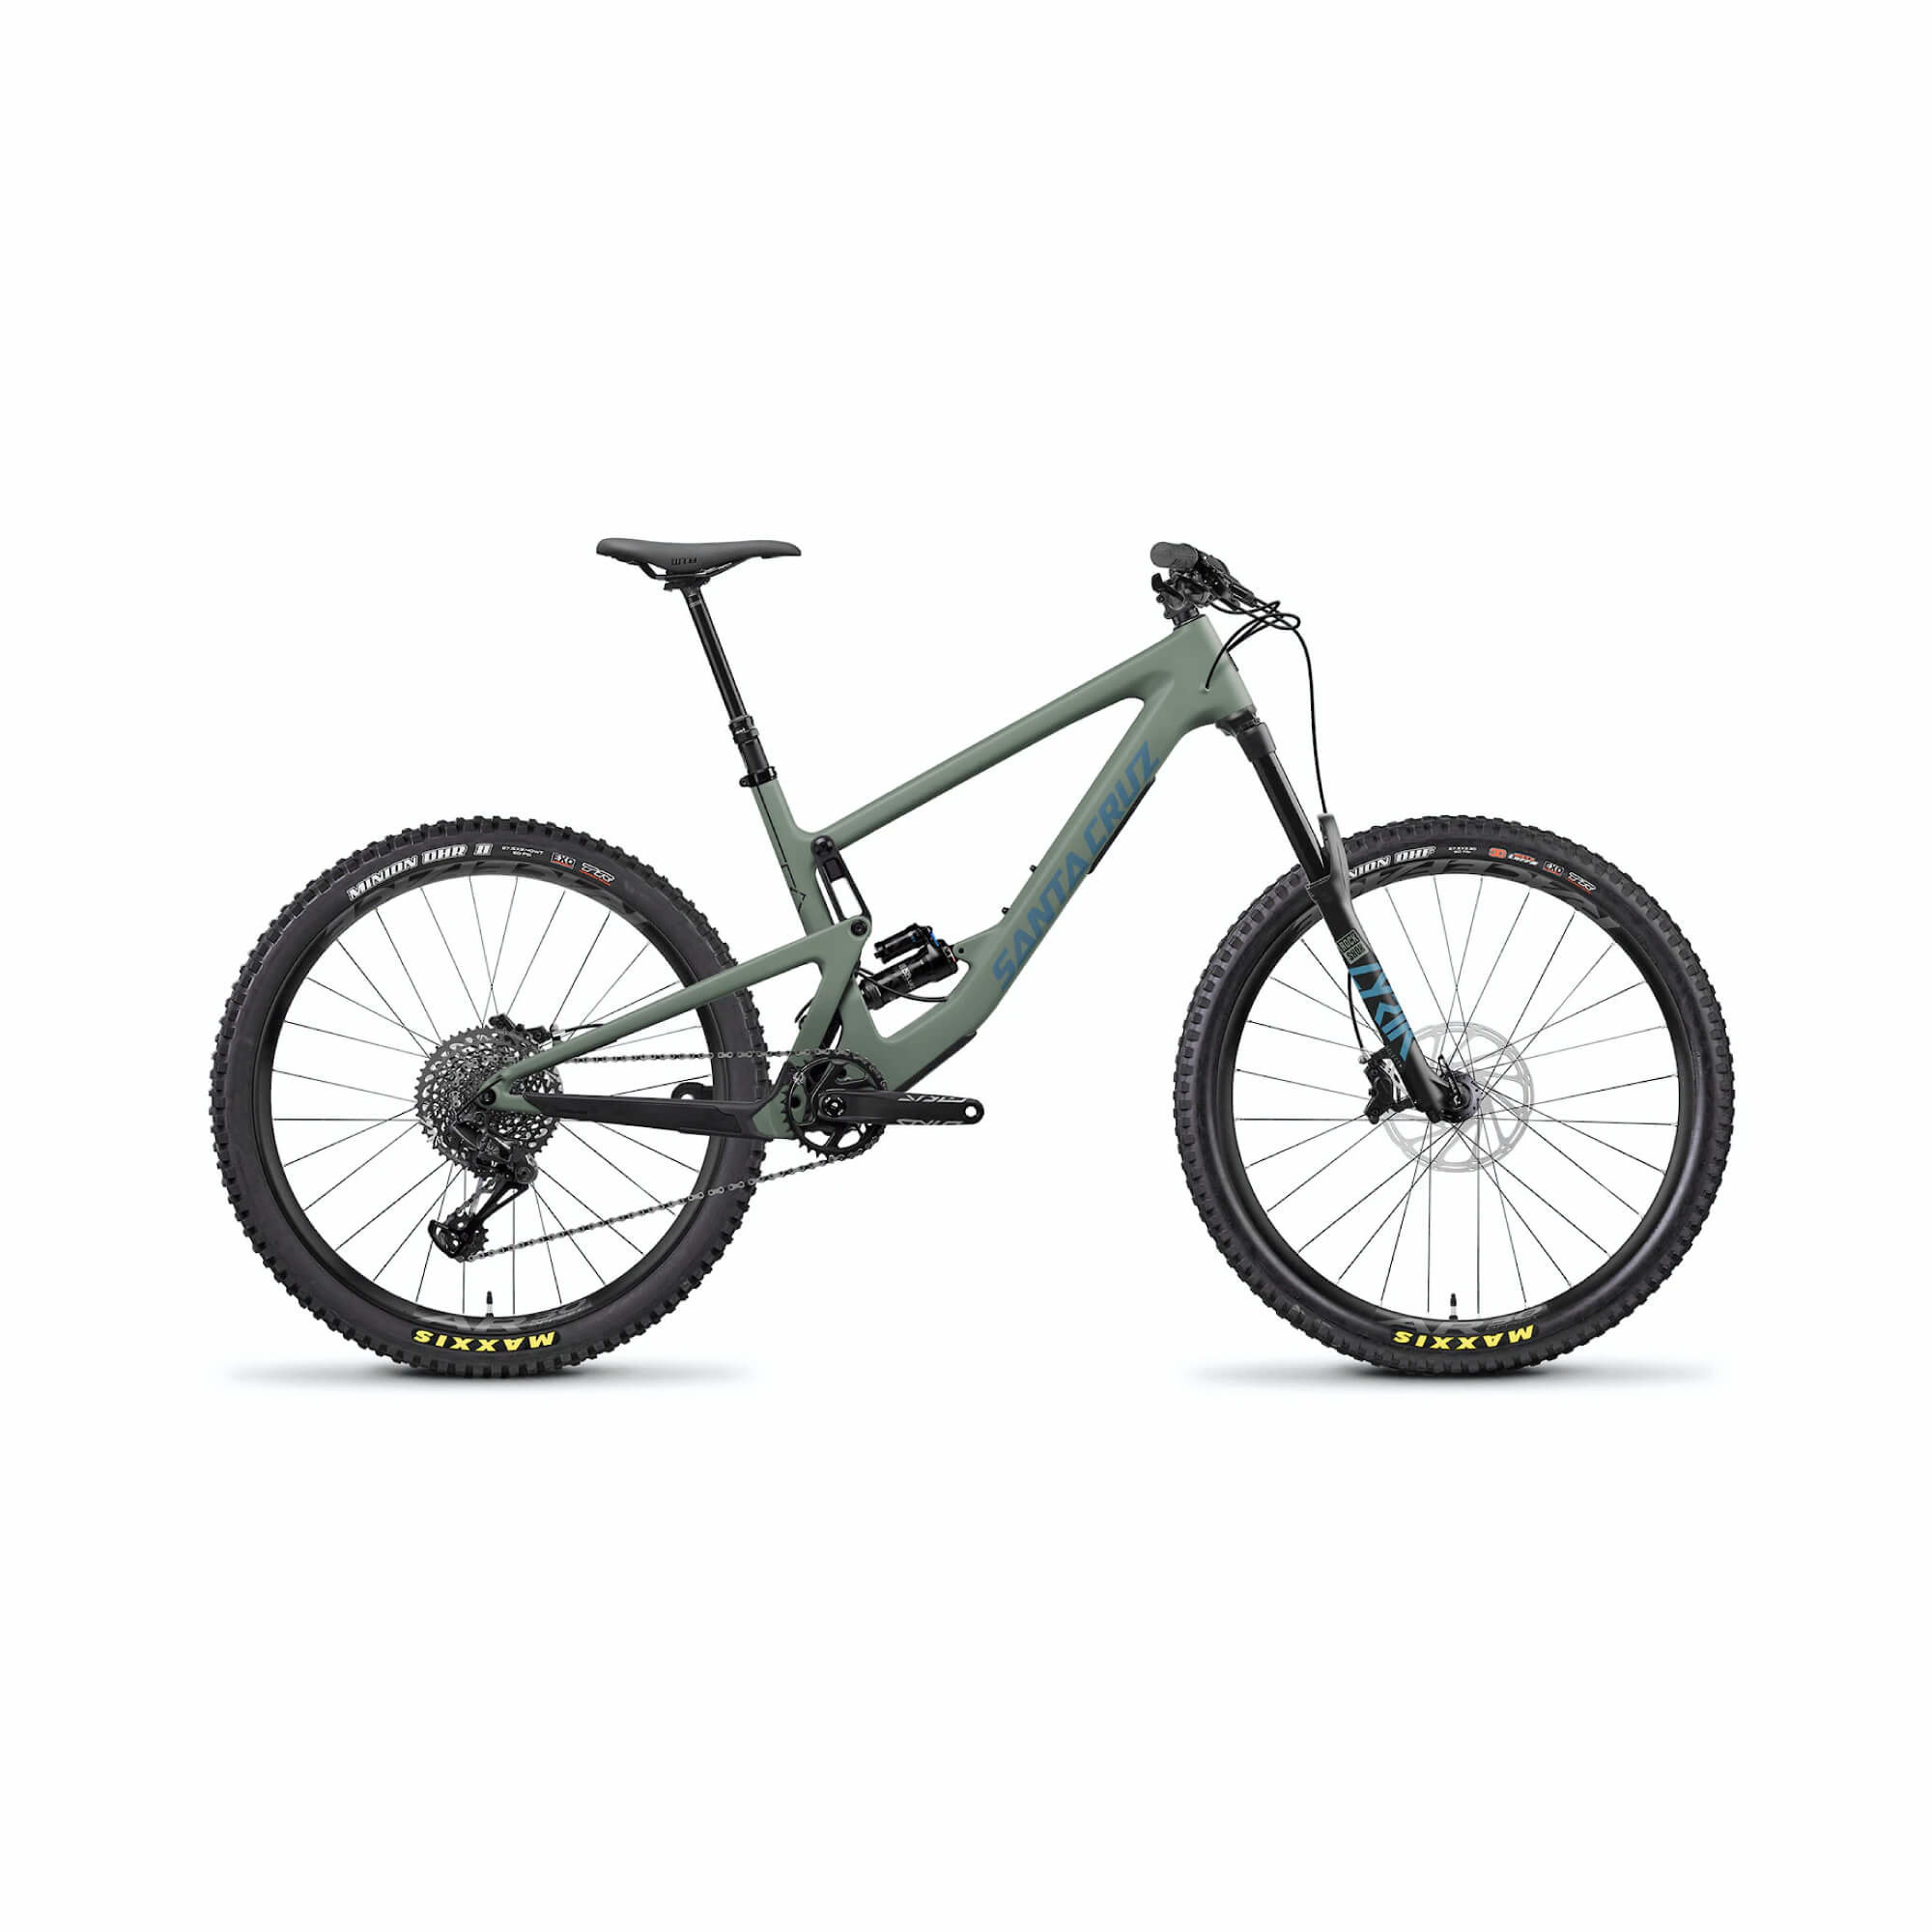 Bronson 3.0 C 27.5 S GX RS Lyrik Select +160 Matte Olive Small 2020-3